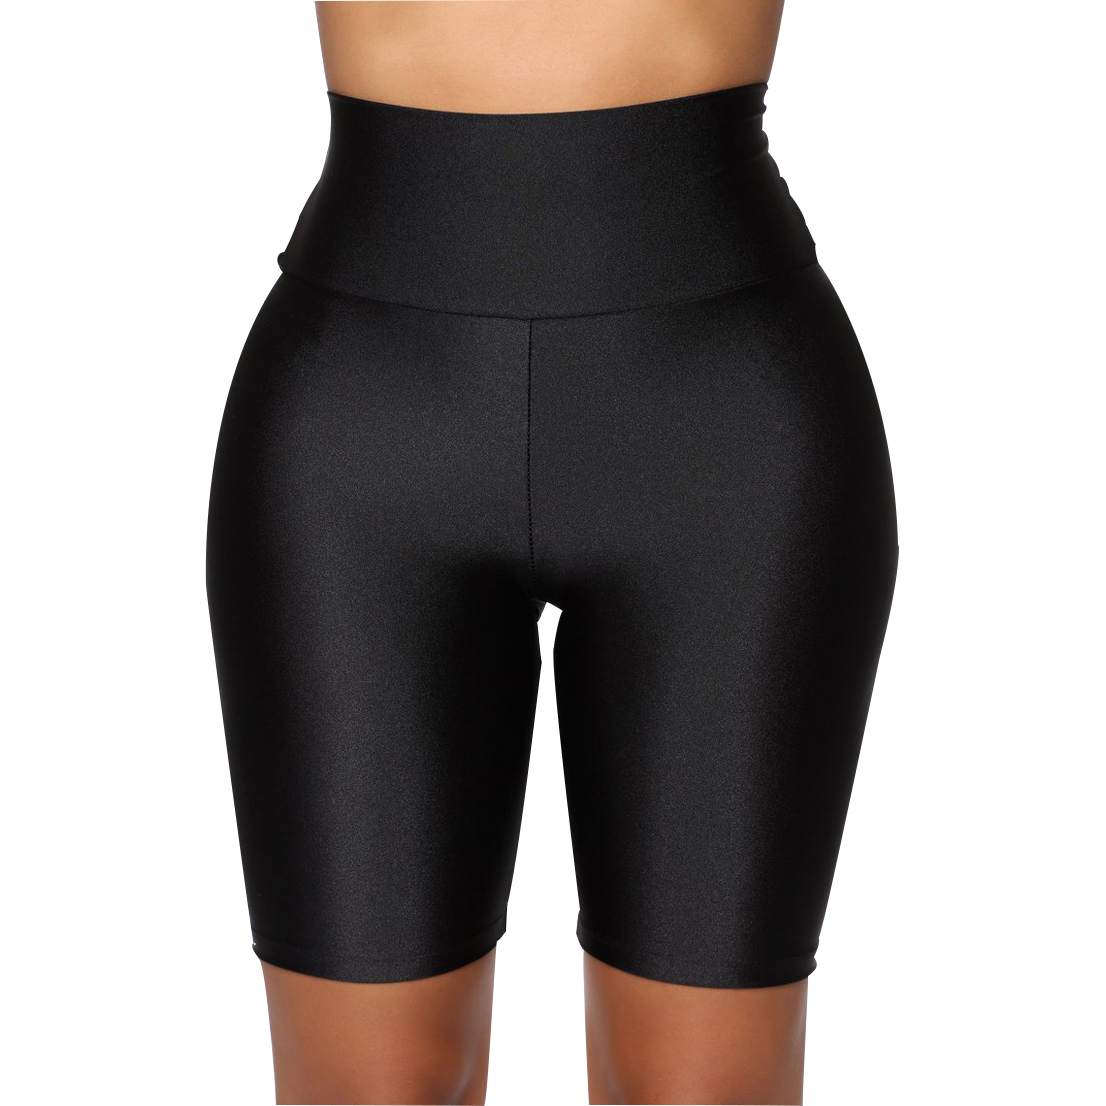 He0d1ae86d3f644dfabb03383a206baaeO - Womens Plain Sports Gym Cycling Skinny Fit High Waist Shorts Lady Summer Casual Solid Basic Stretchy Bodycon Short Pants